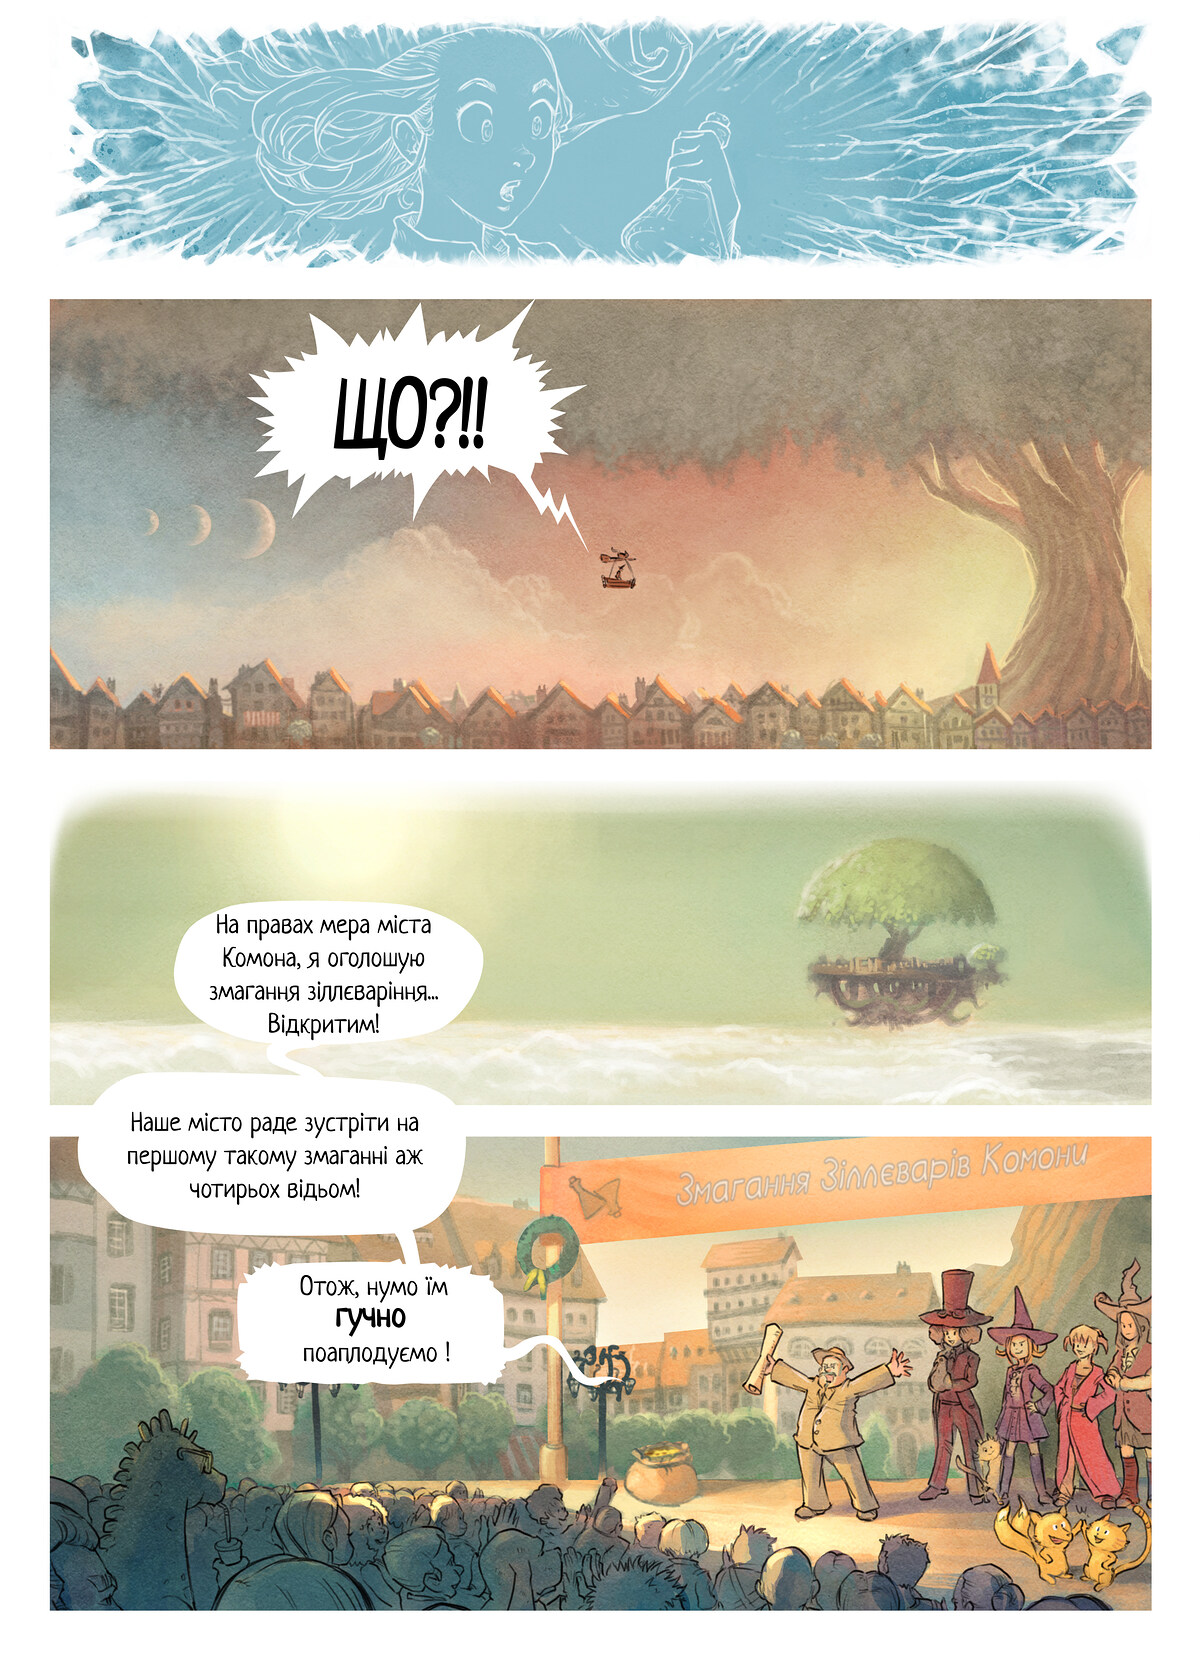 A webcomic page of Pepper&Carrot, епізод 6 [uk], стор. 3